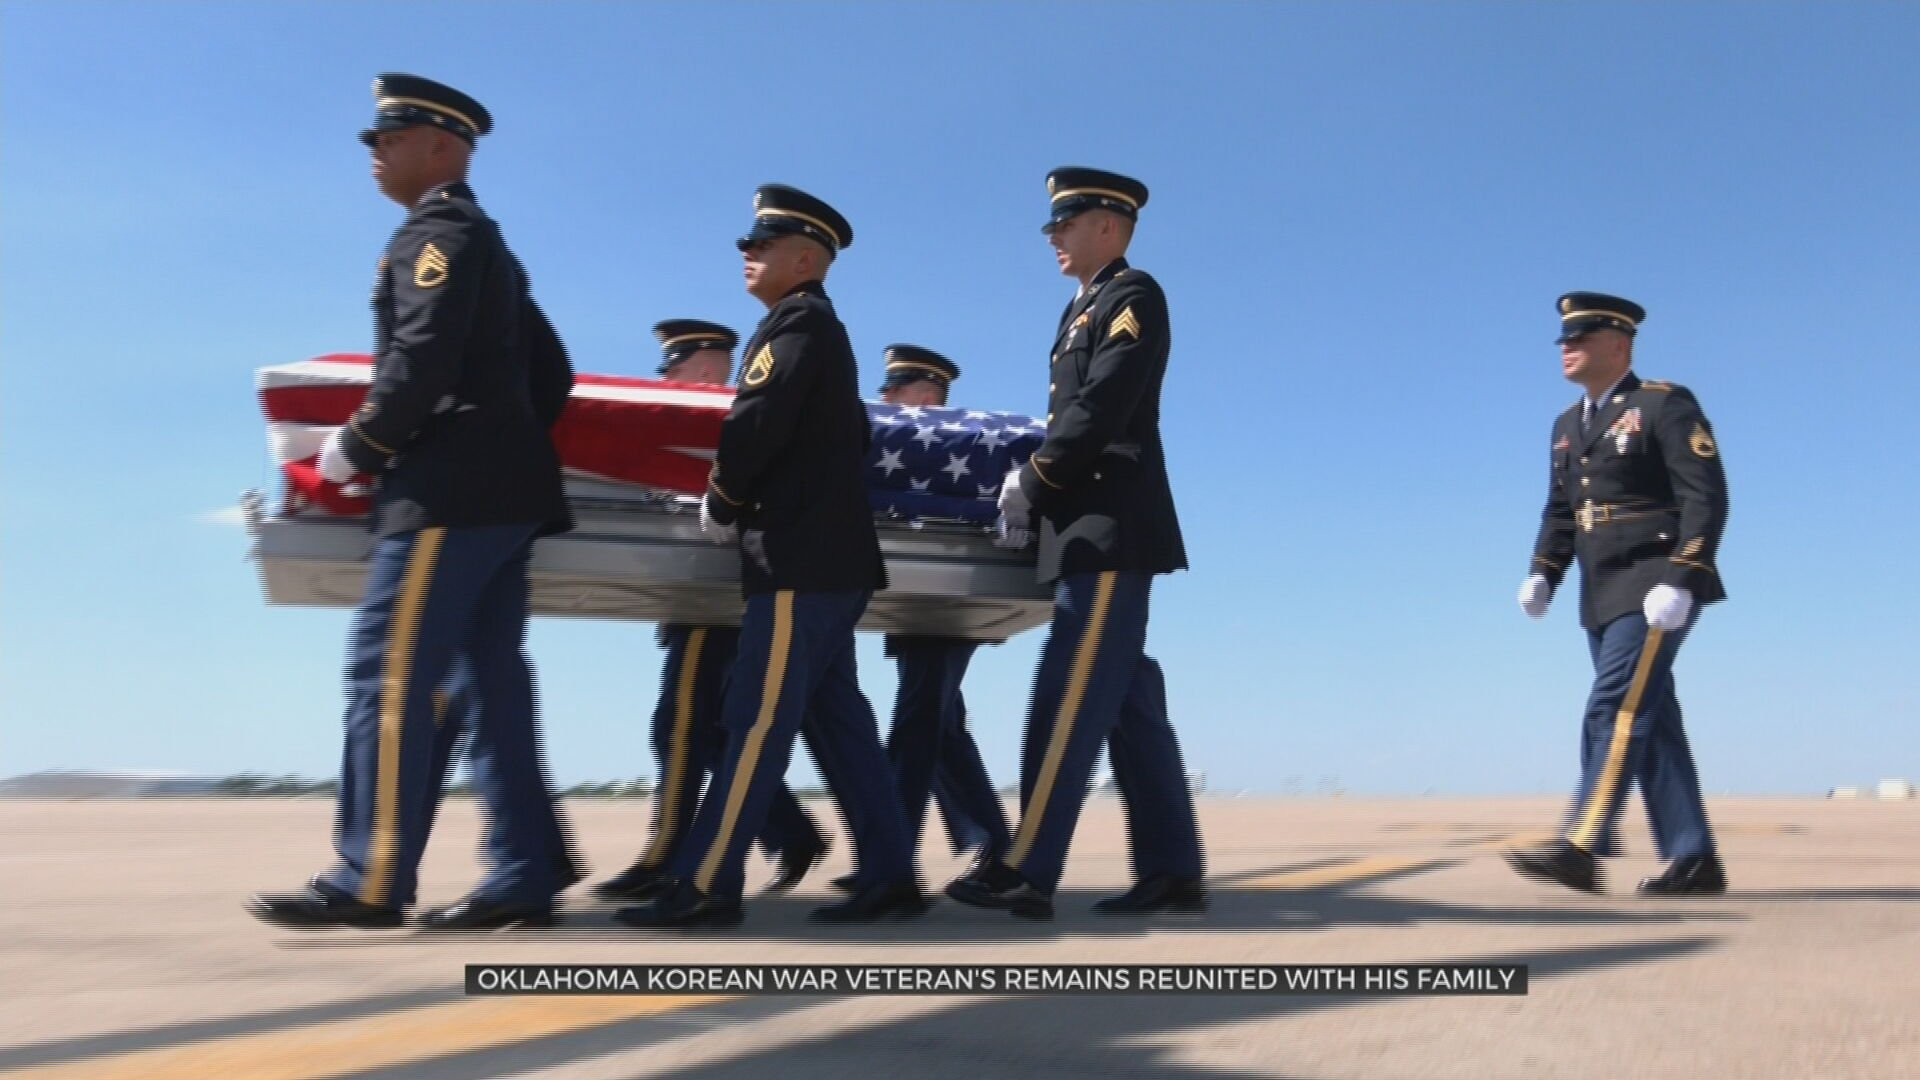 Korean War Veteran's Remains Returned Home To Oklahoma After 70 Years MIA